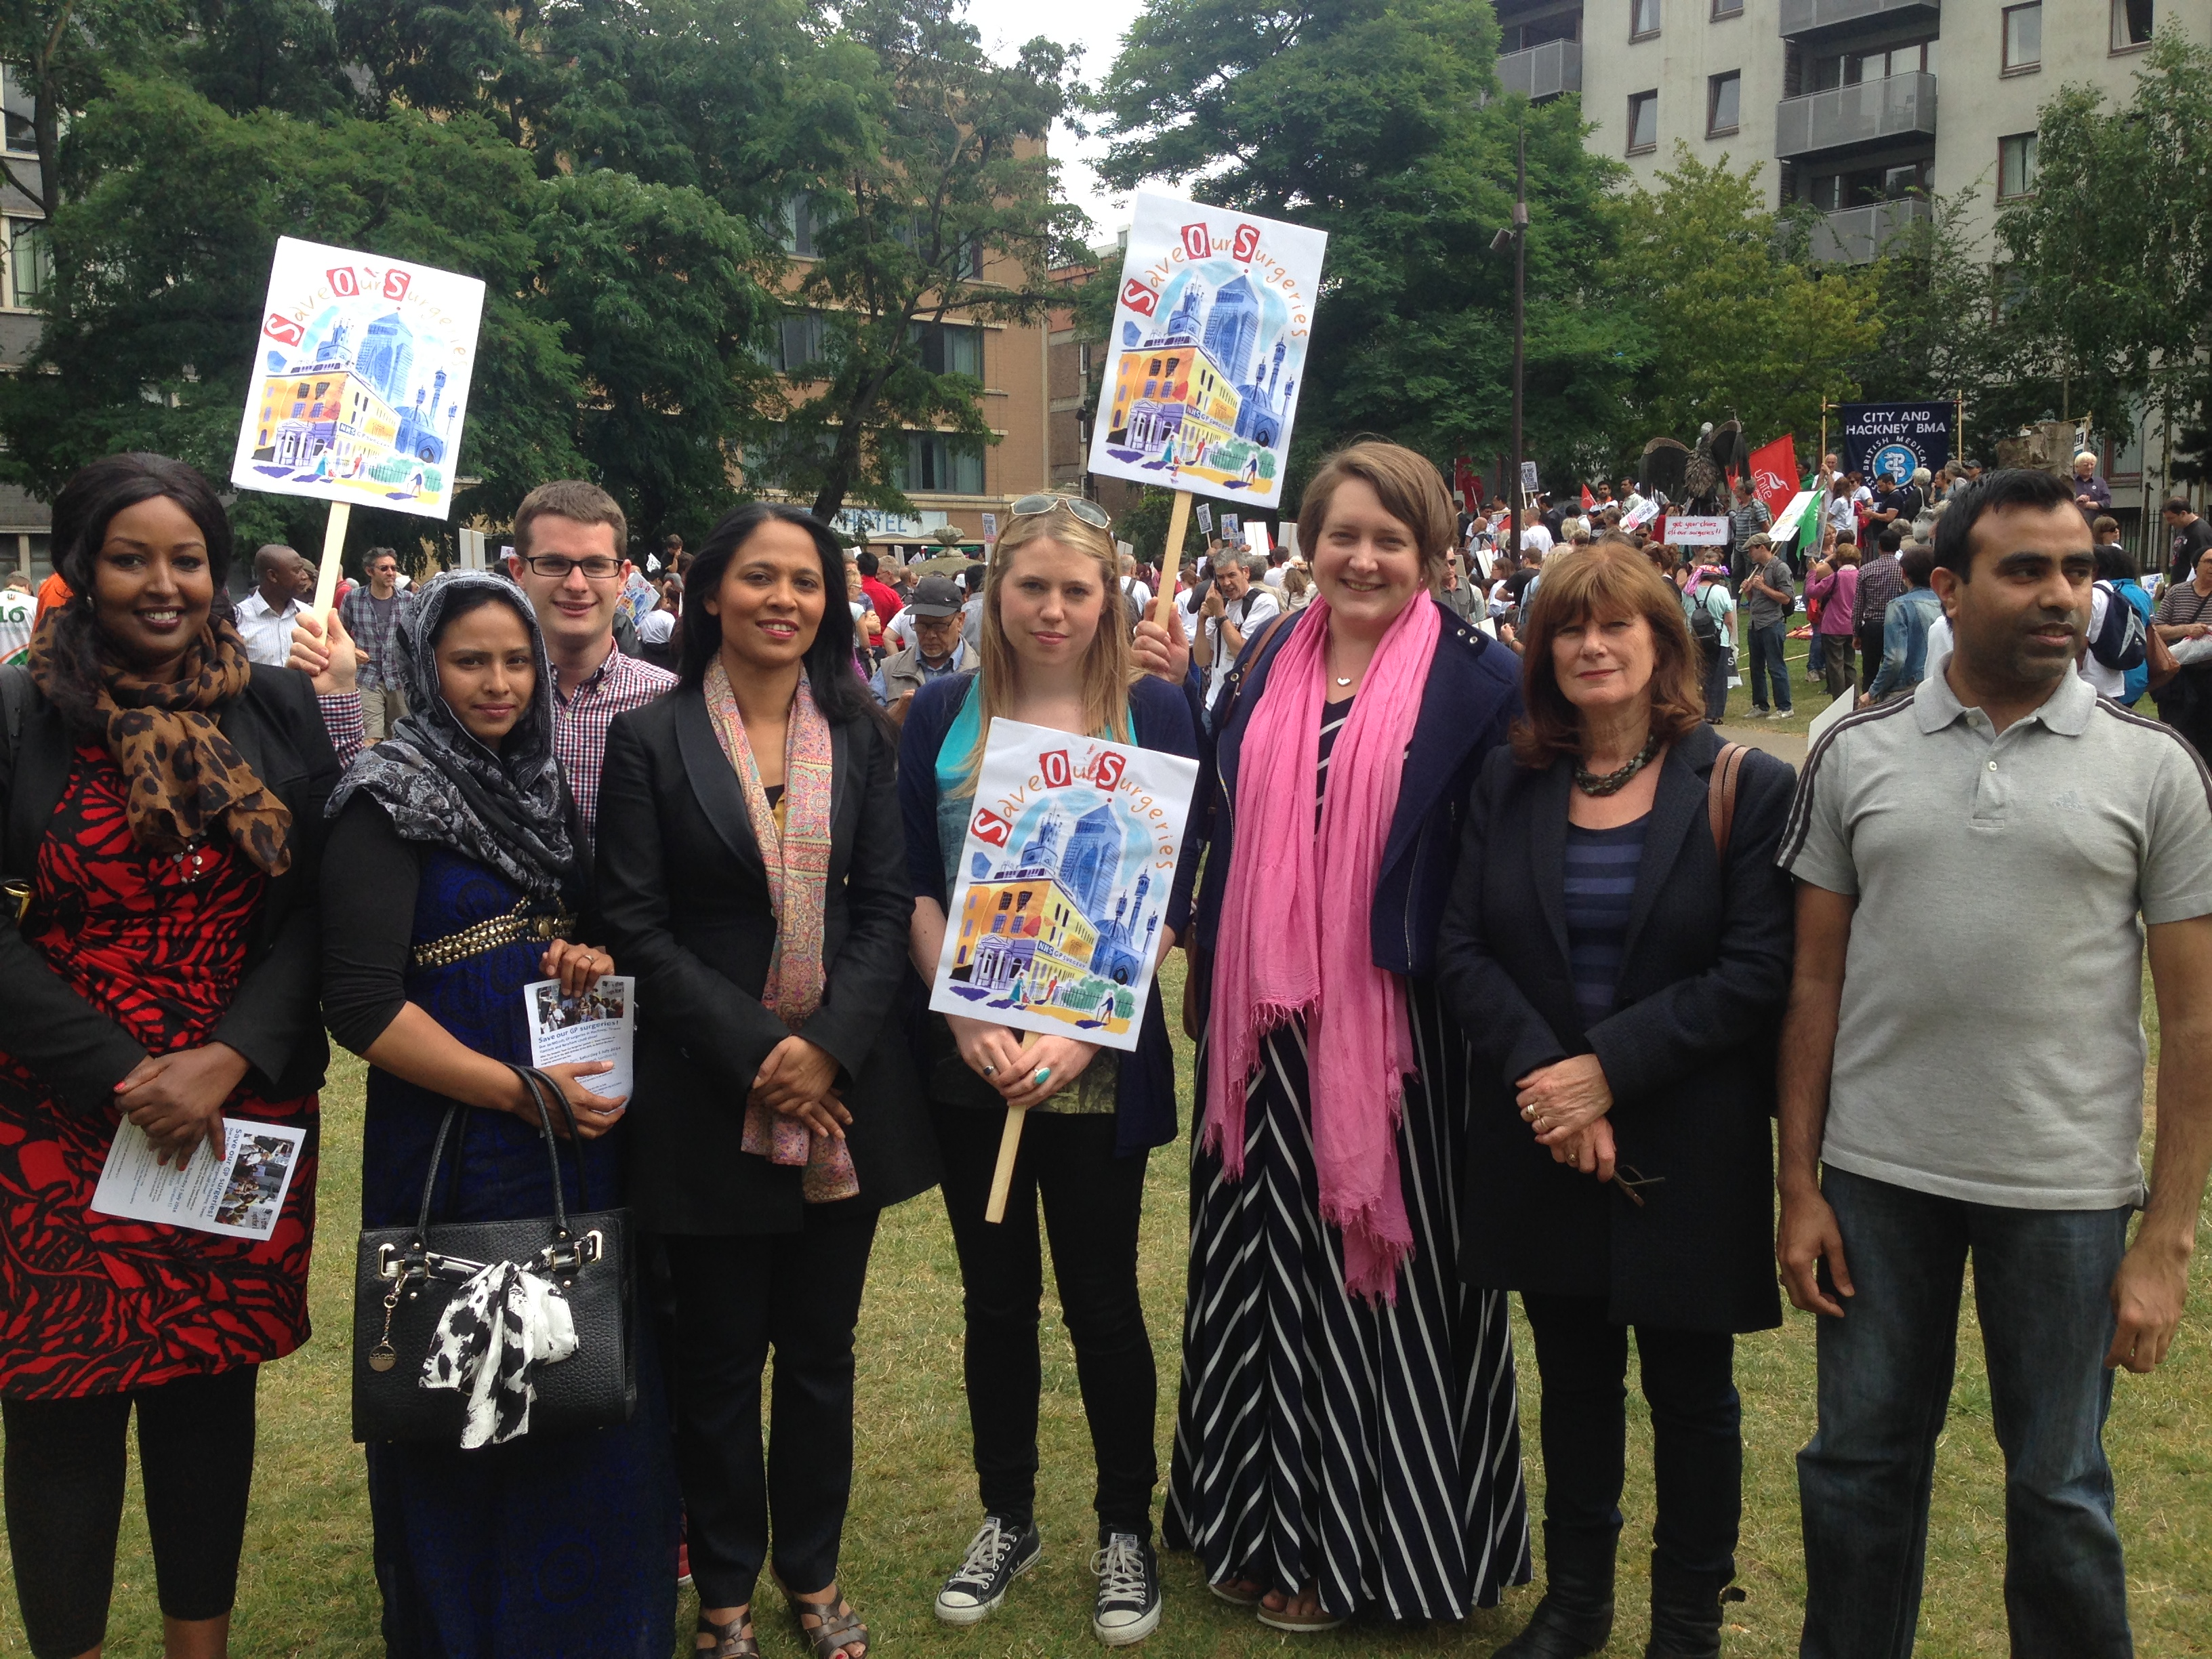 Labour_Councillors_with_Rushanara_Ali_at_the_NHS_march.JPG